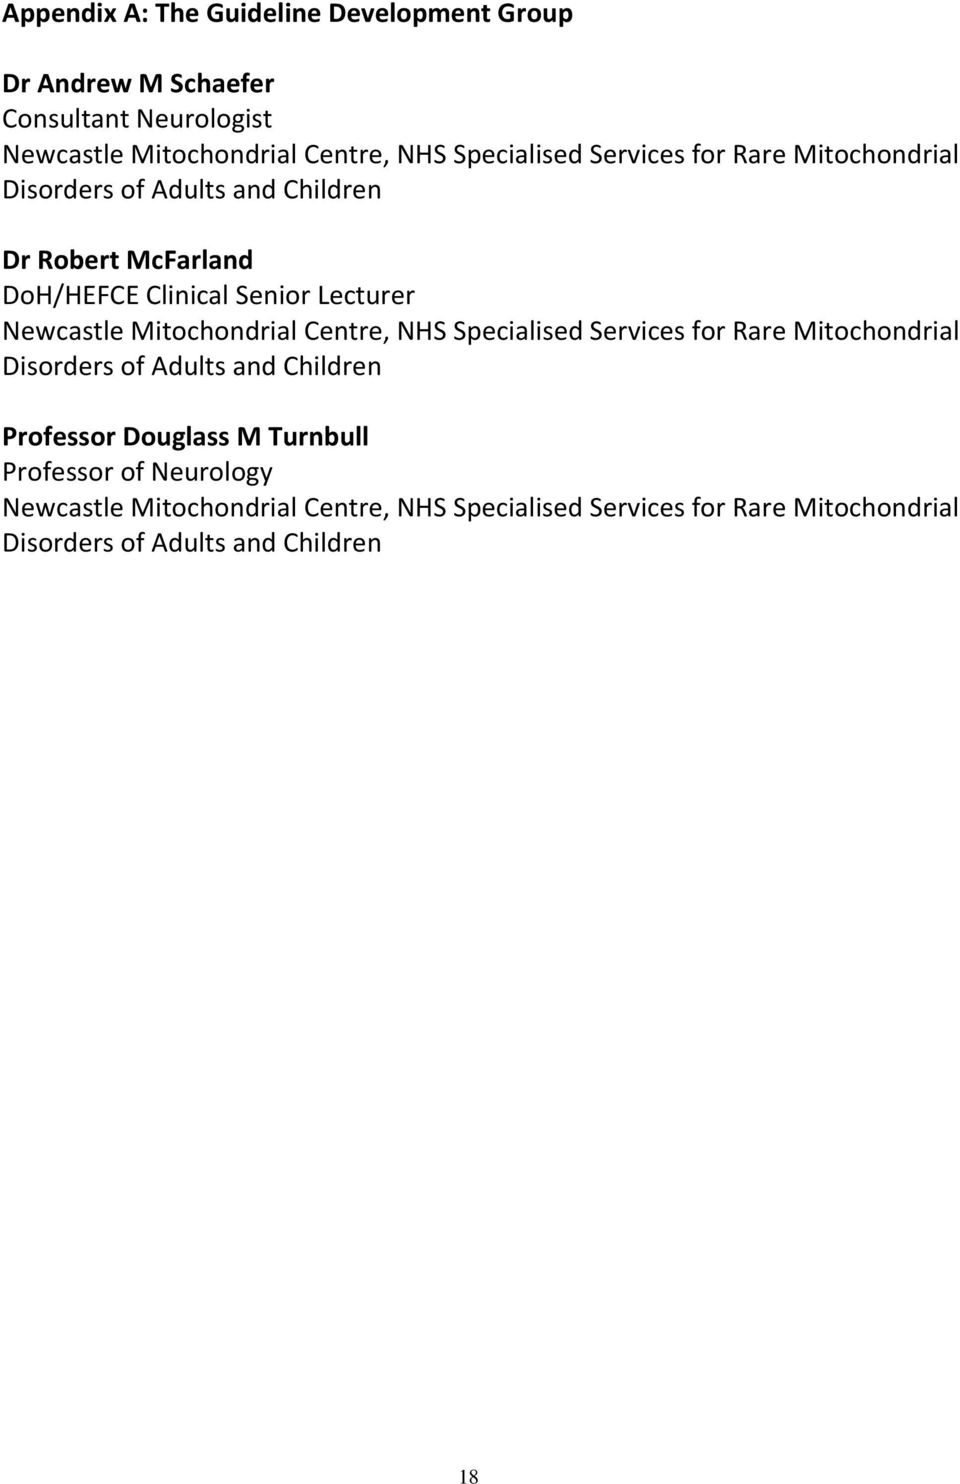 Newcastle Mitochondrial Centre, NHS Specialised Services for Rare Mitochondrial Disorders of Adults and Children Professor Douglass M